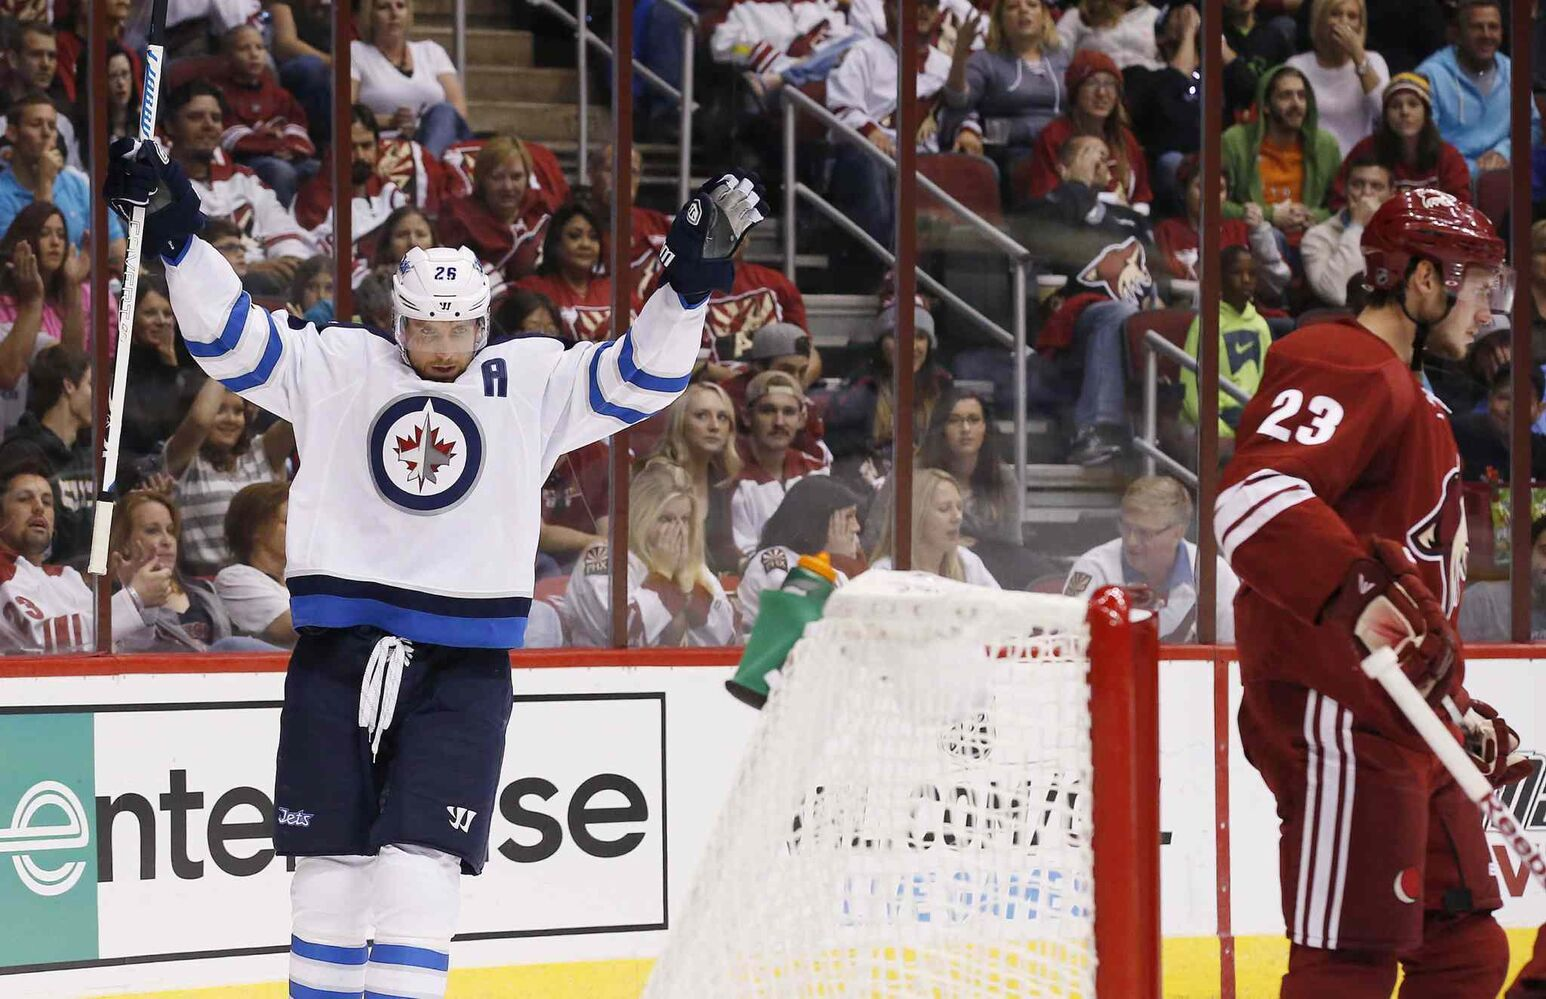 Winnipeg Jets' Blake Wheeler (26) celebrates his goal, the first of two during the first period, against the Arizona Coyotes as Coyotes' Oliver Ekman-Larsson (23), of Sweden, skates in front of the goal area in an NHL hockey game Thursday. (Ross D. Franklin / The Associated Press)